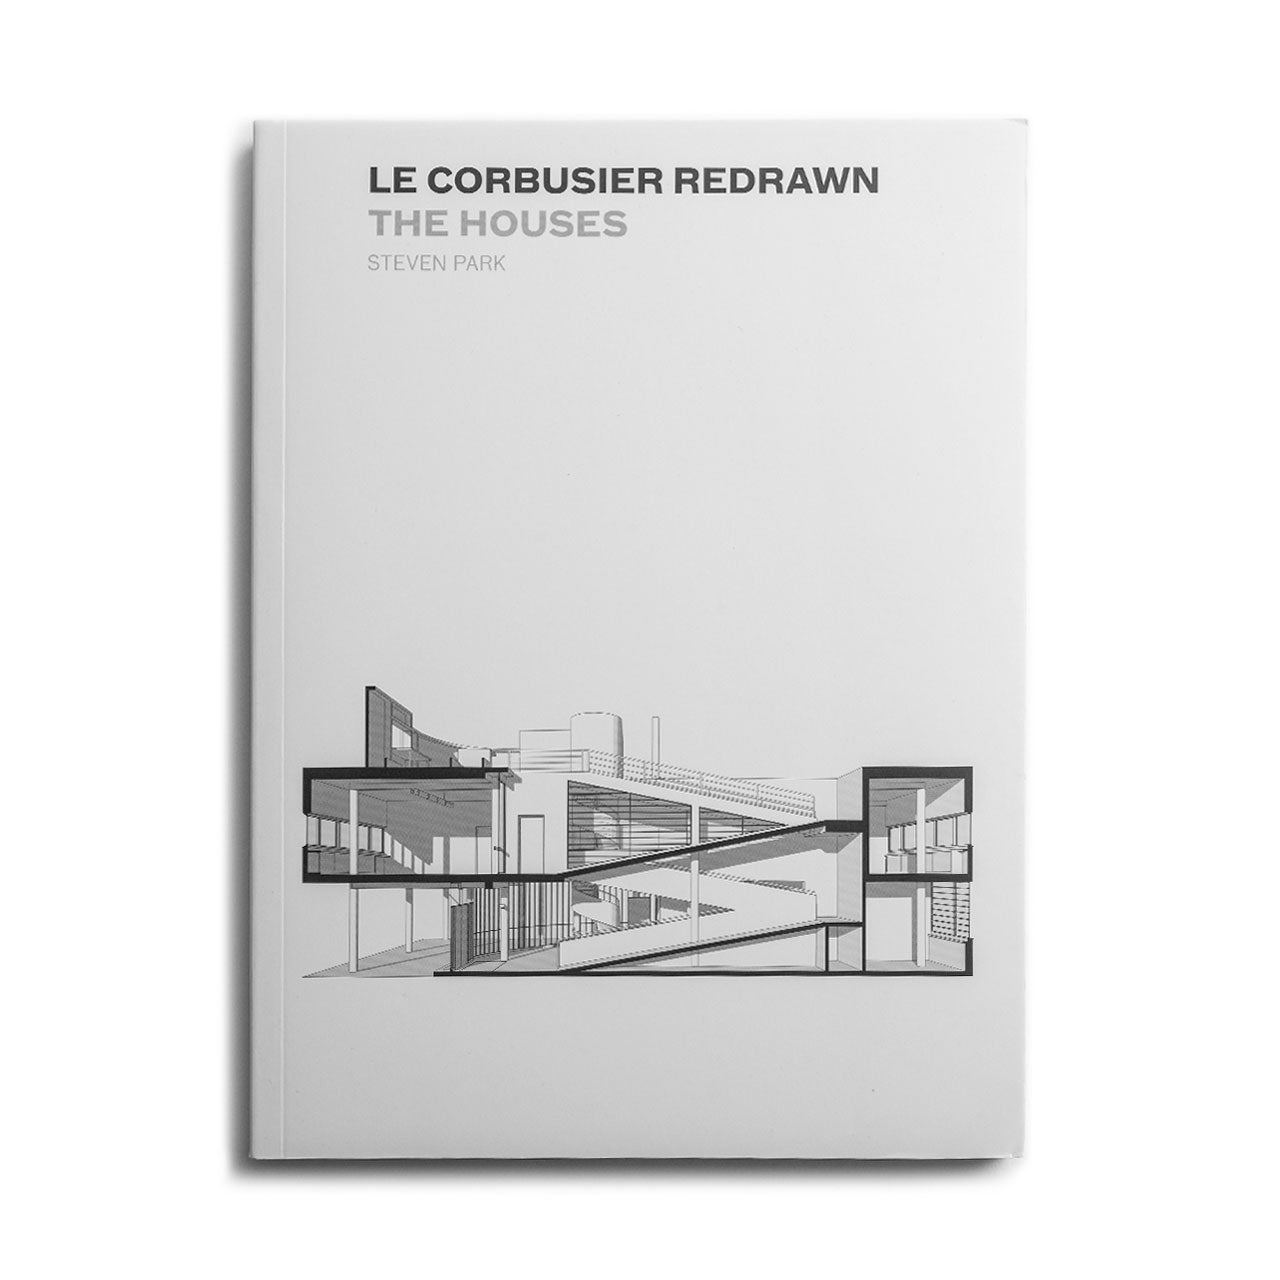 Le Corbusier Redrawn